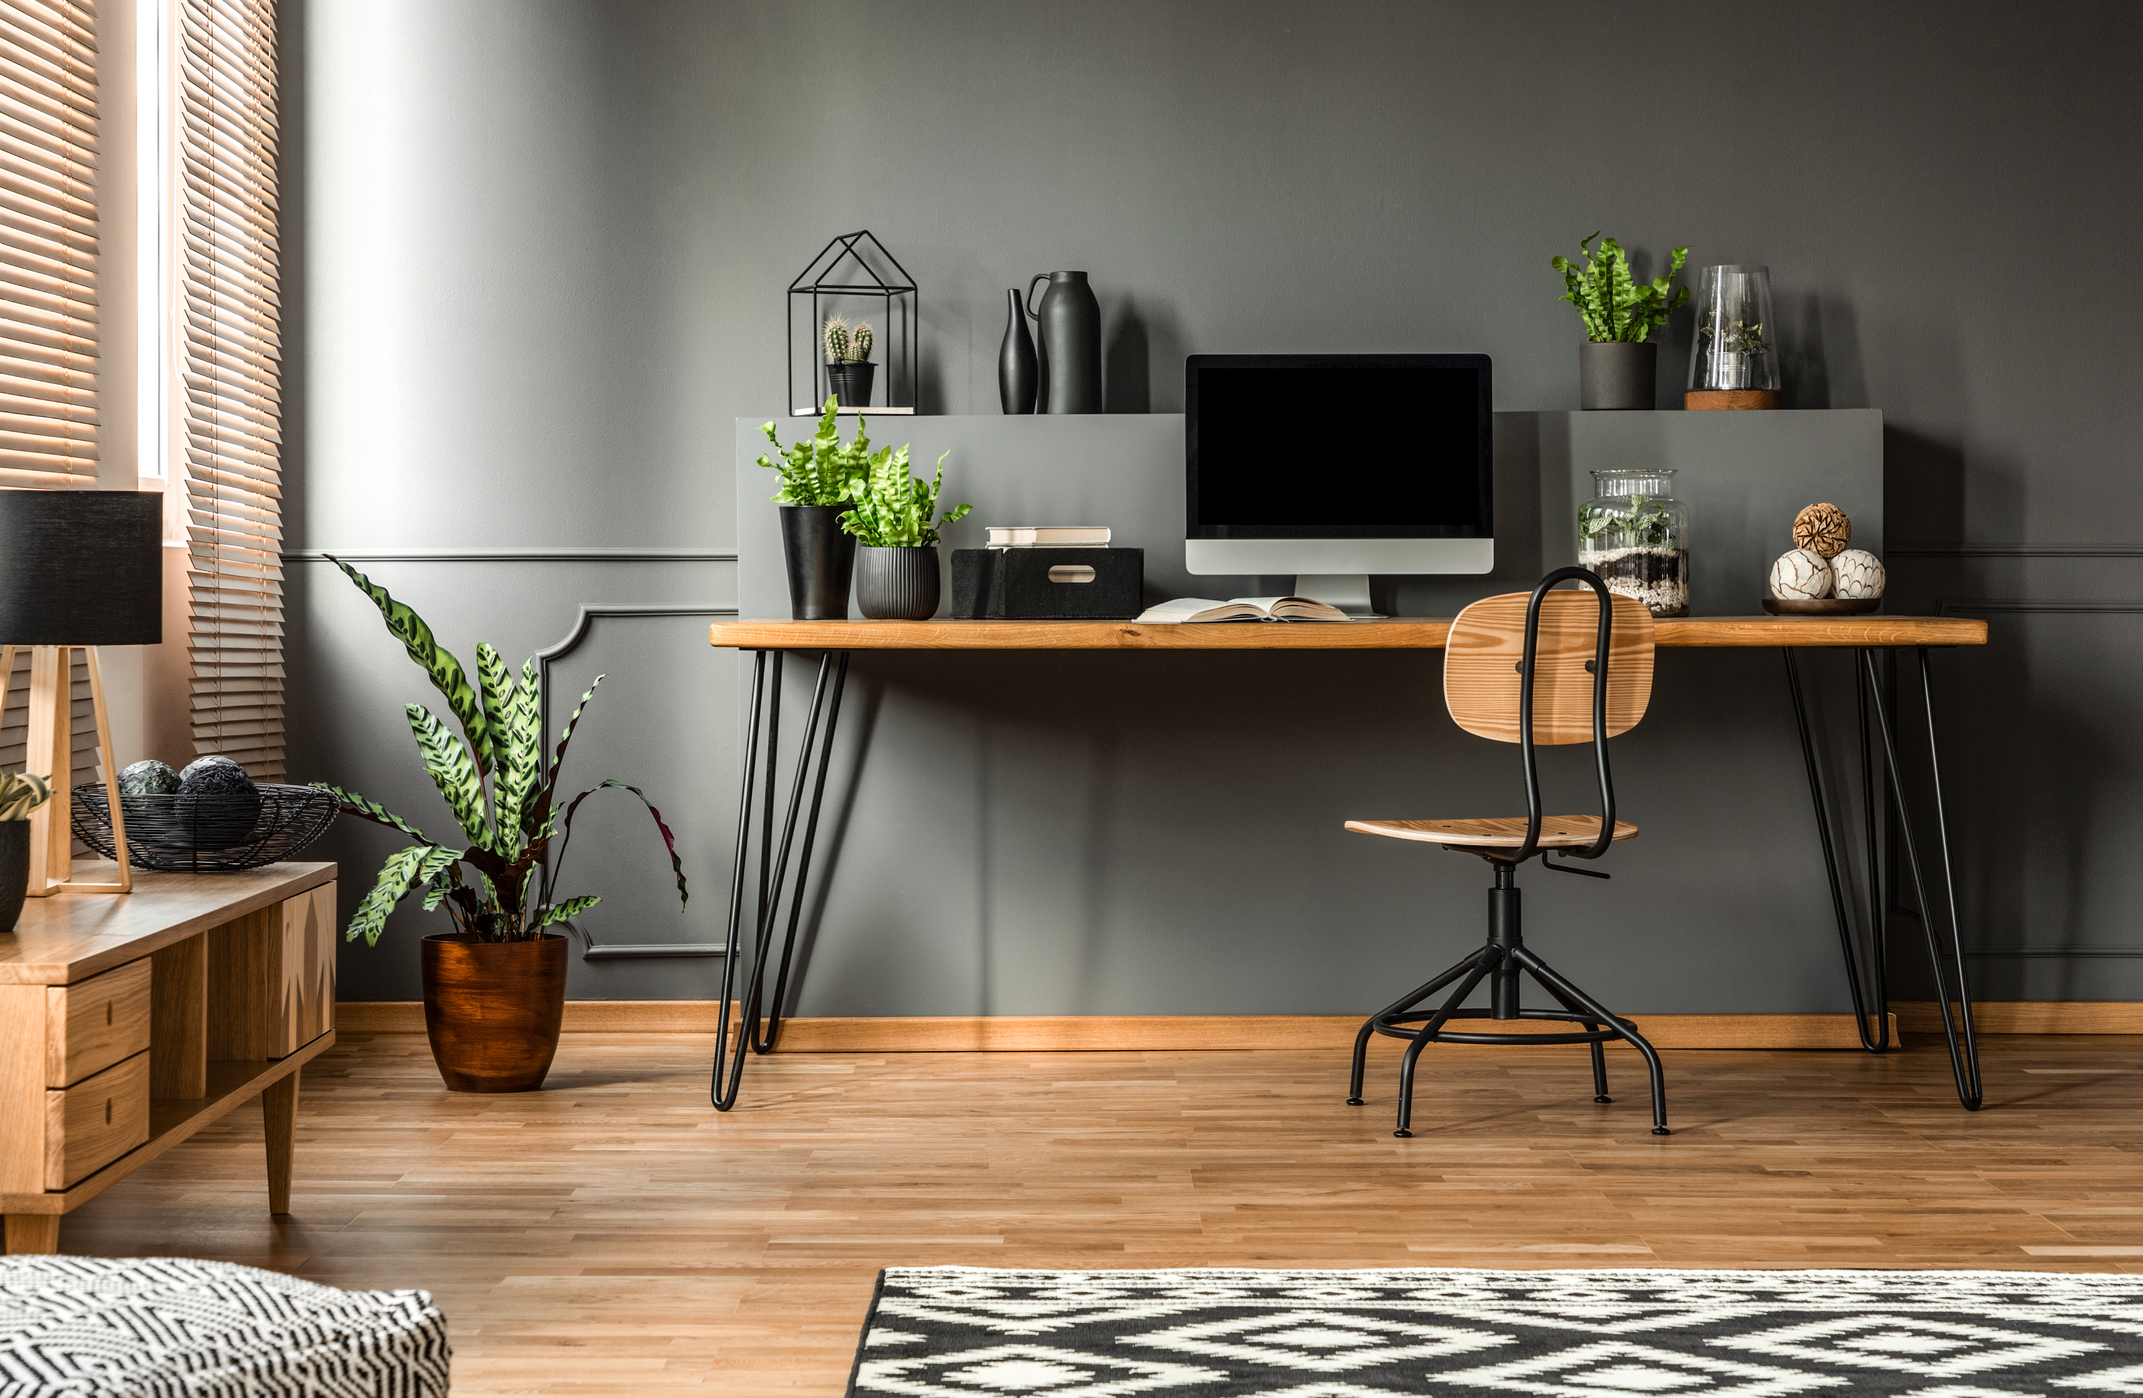 Dark home office interior with wooden desk, chair and computer in the study space in the middle and a rug